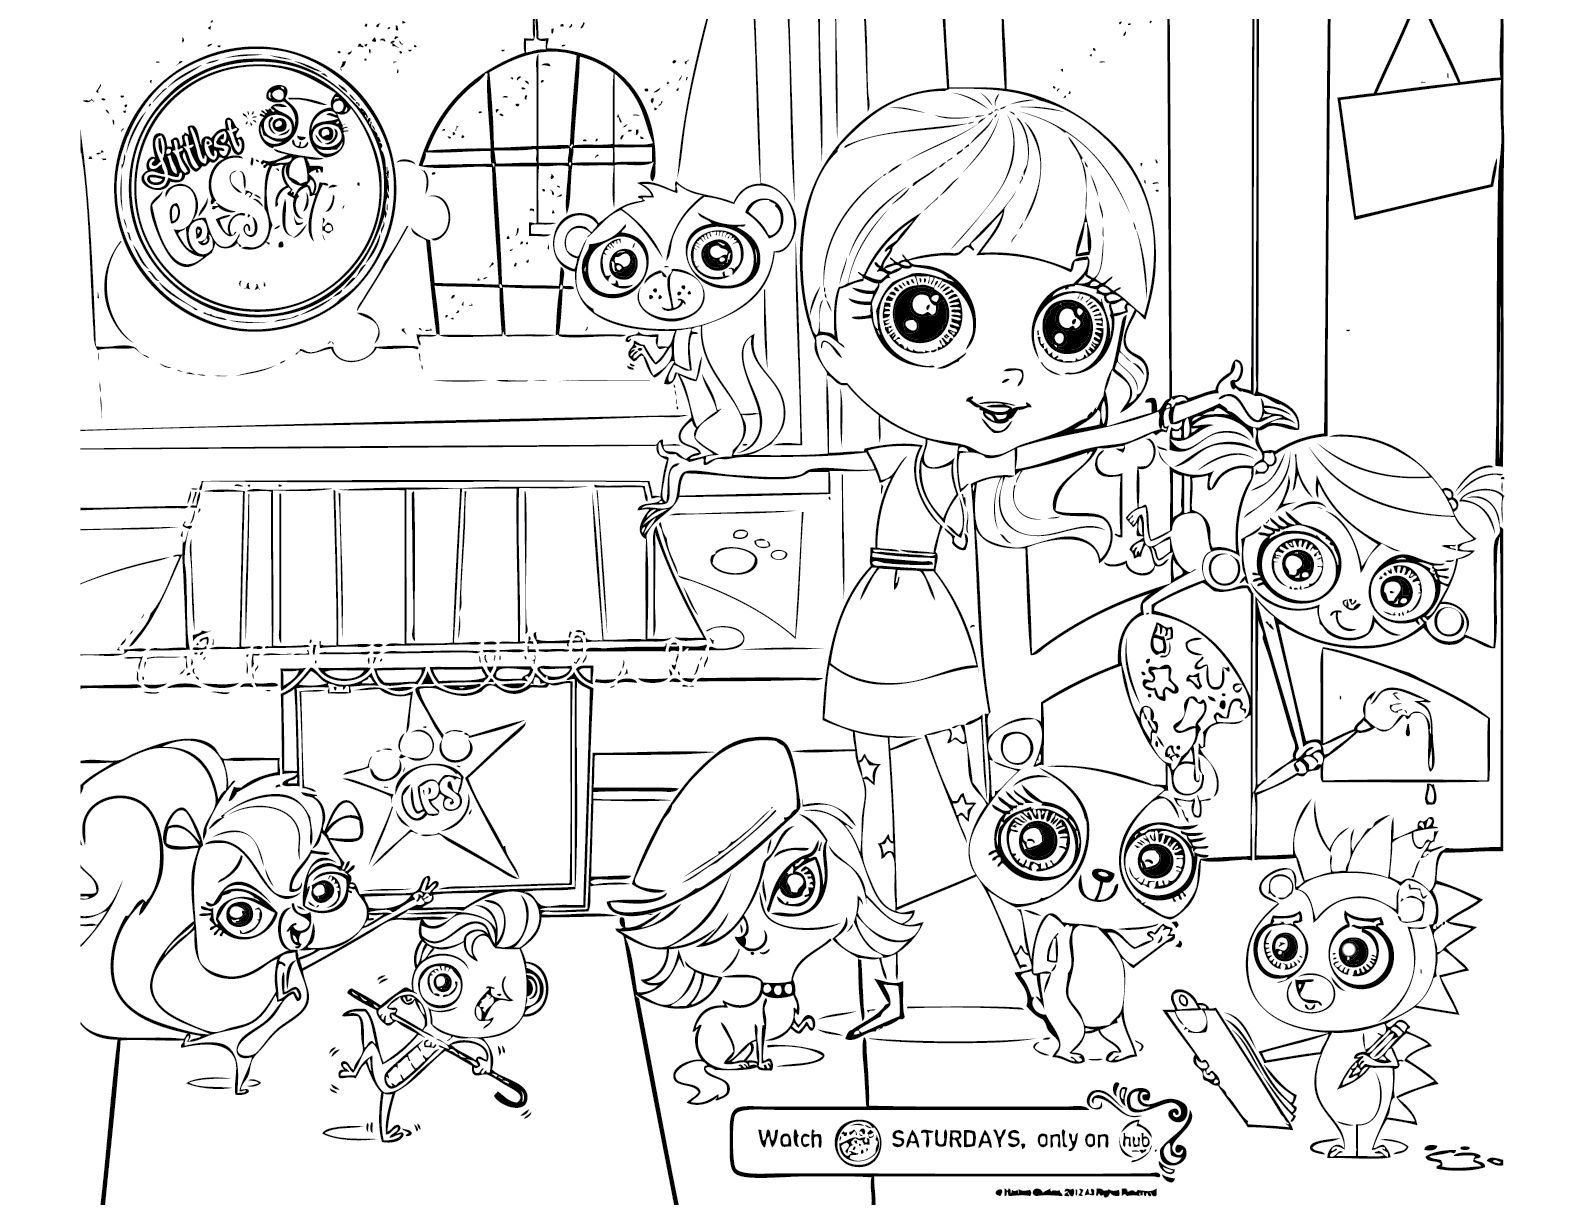 My Littlest Pet Shop Coloring Pages Free Printable Coloring Pages Coloring Pages For Kids Frog Coloring Pages Coloring Pages